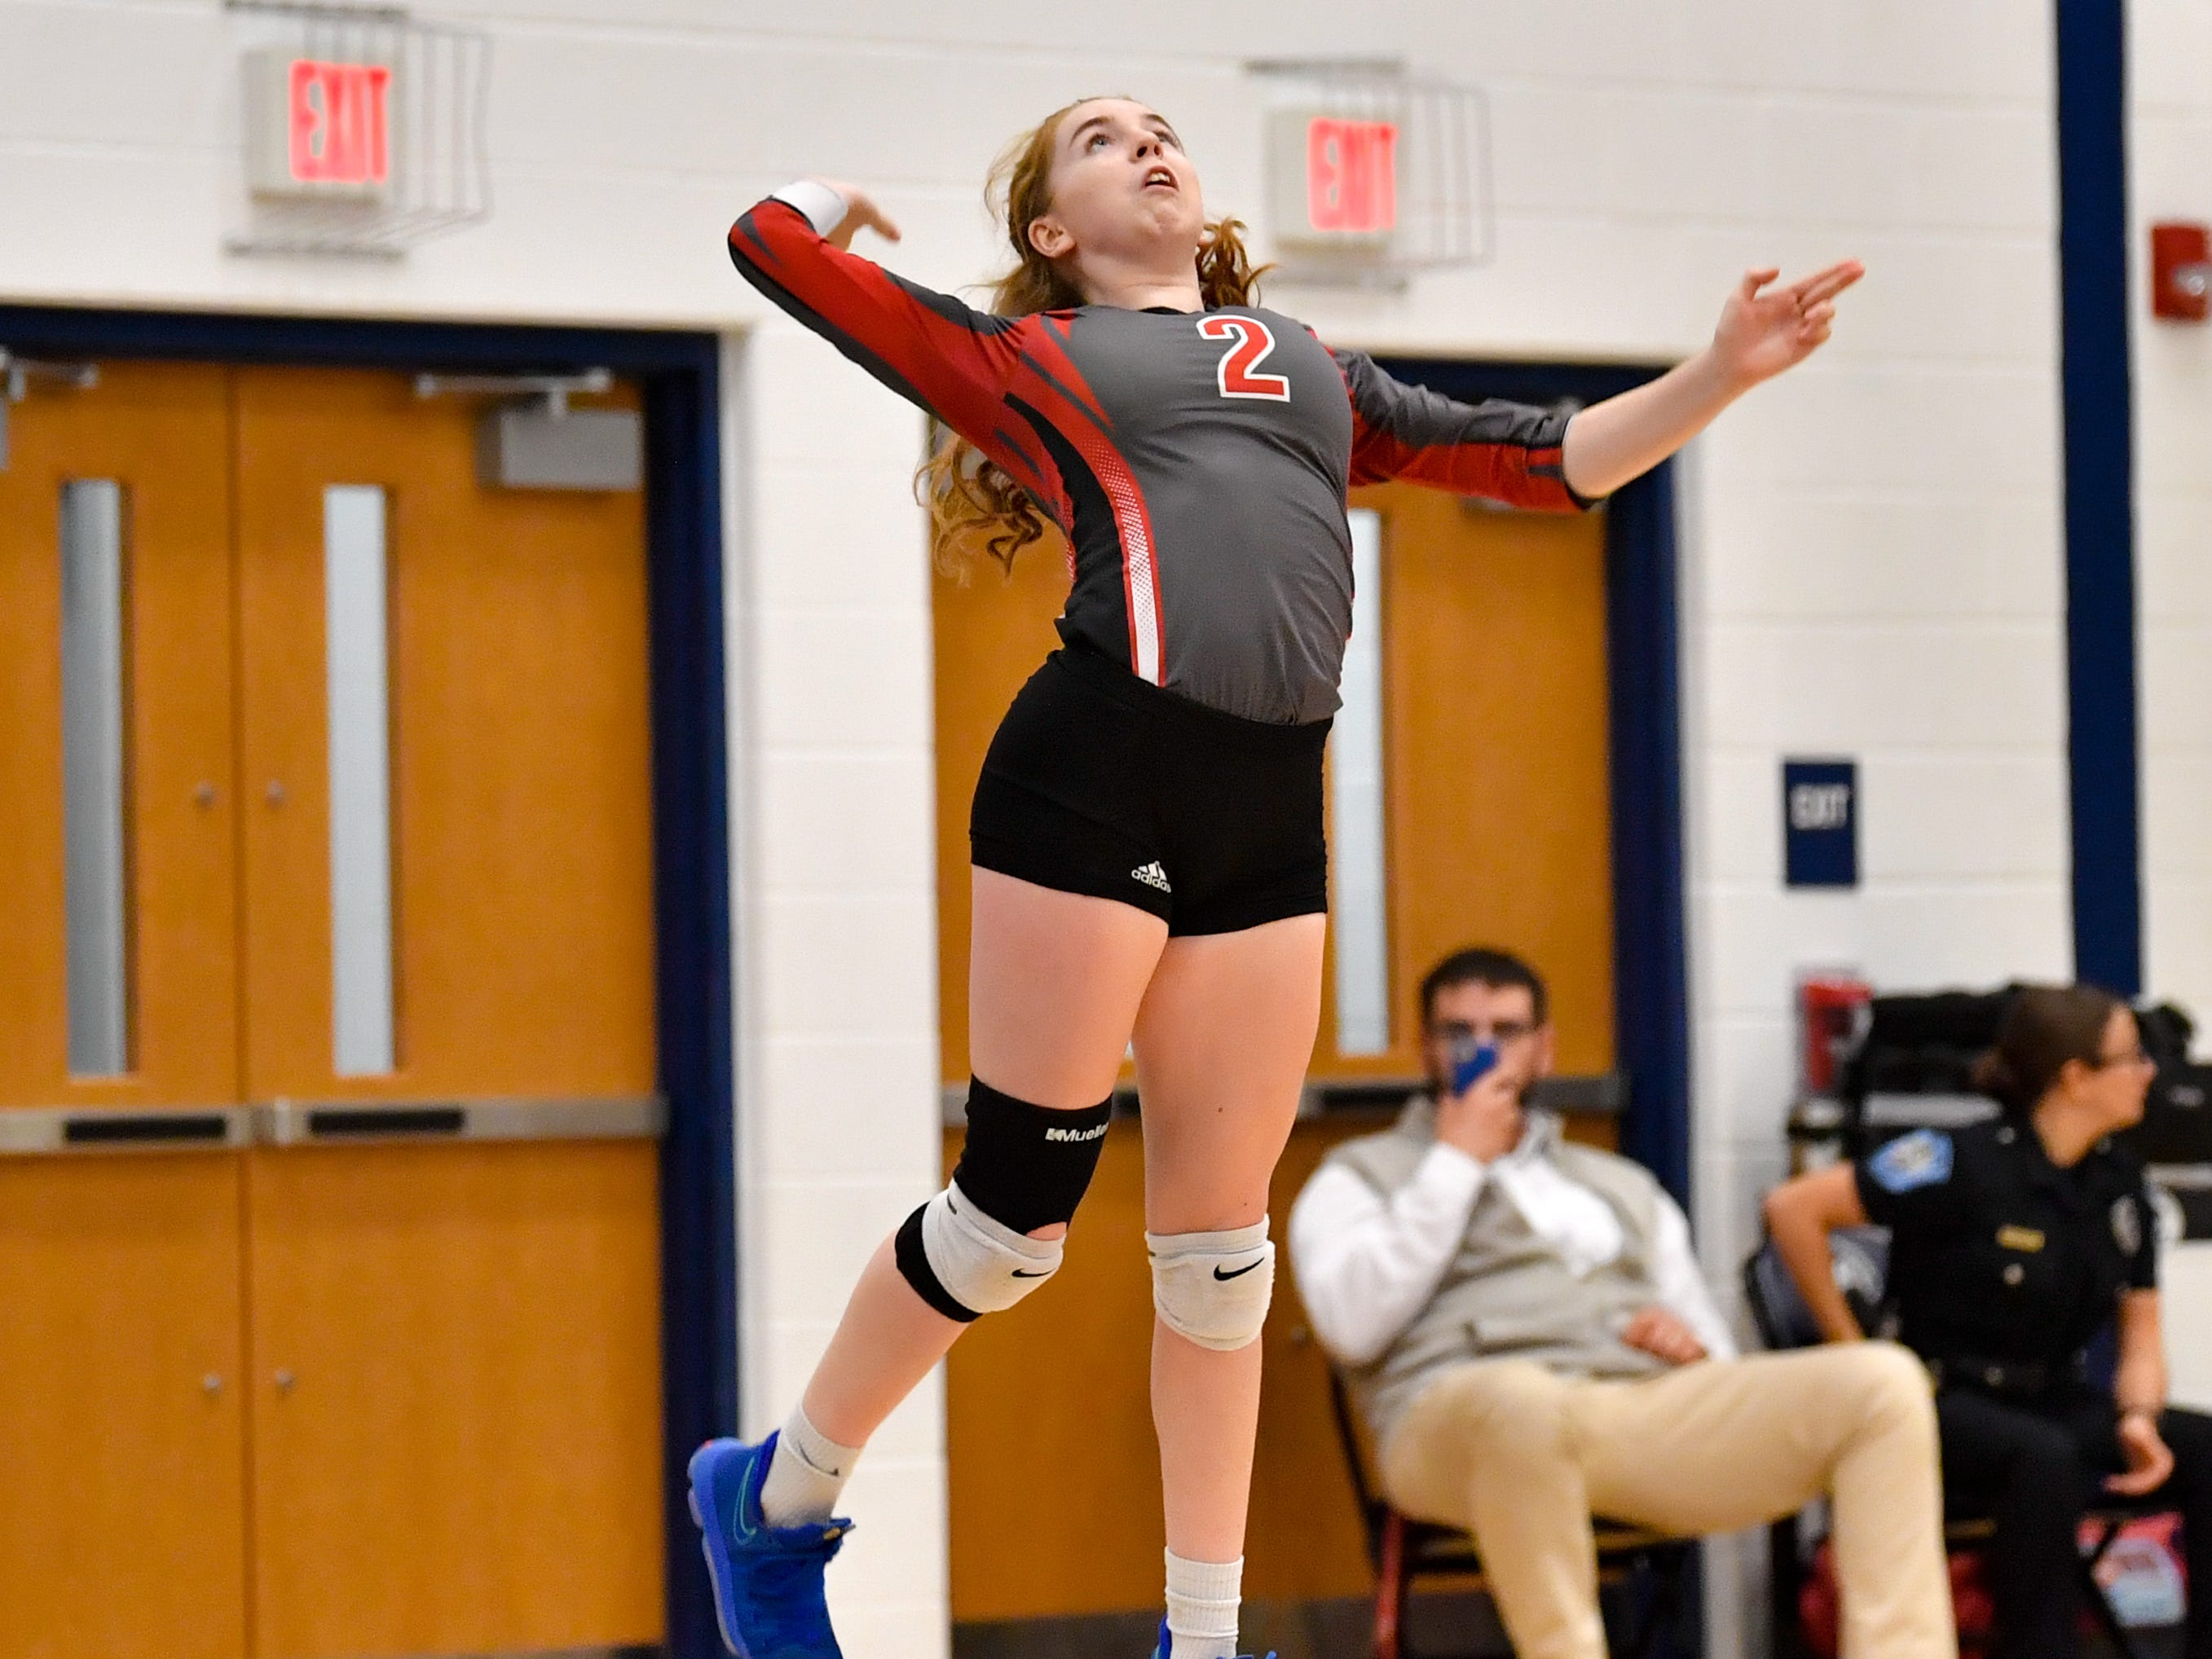 Chayce Hoffman (2) performs a jump serve during the District 3 Class 3A girls' volleyball quarterfinals between Dover and York Suburban at West York High School, October 30, 2018. The Eagles defeated the Trojans 3-2.